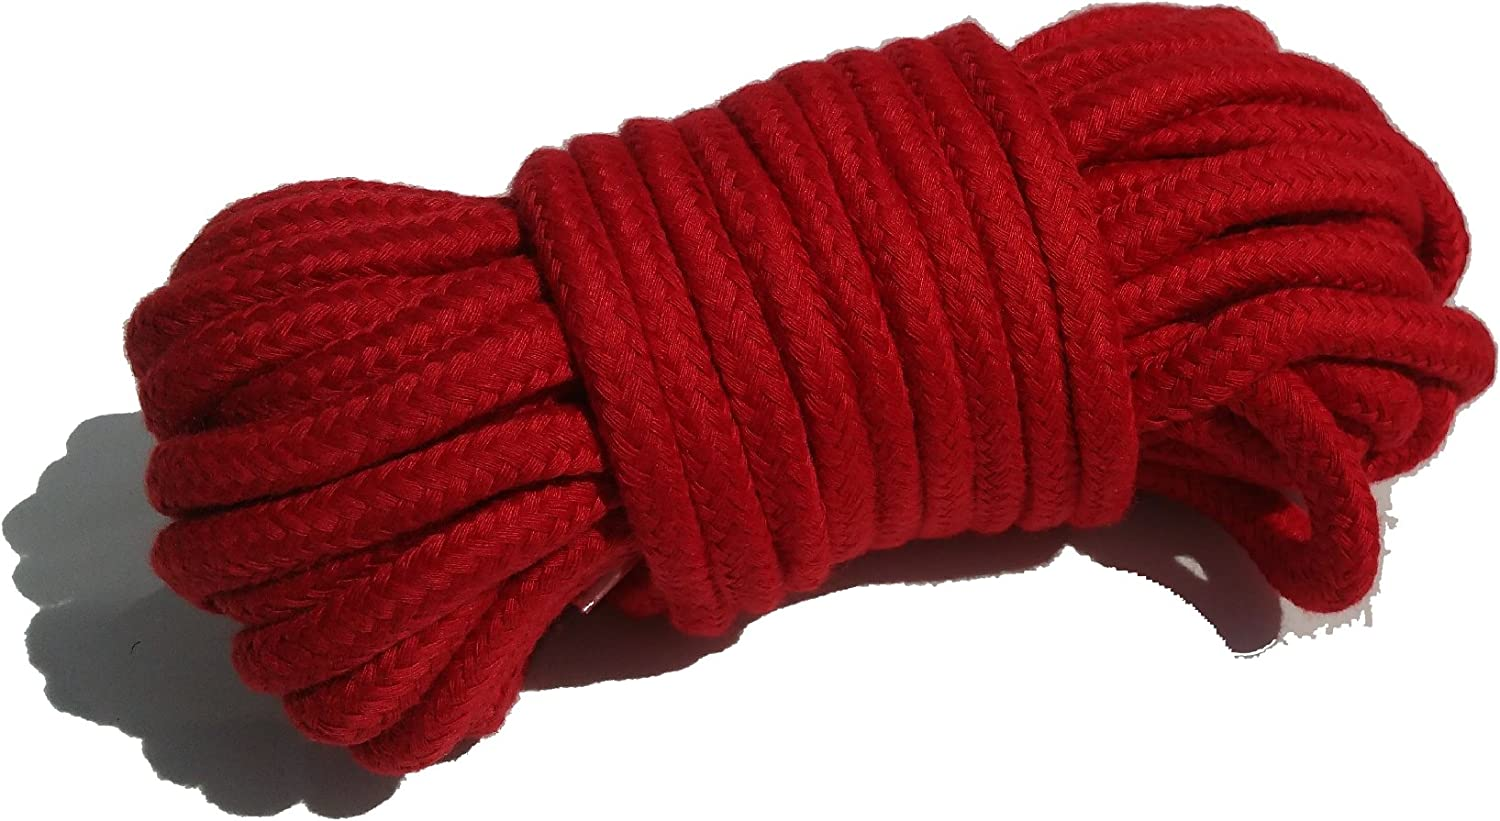 Red Soft Rope 10 Meters Multi-Purpose Washable by Cufz